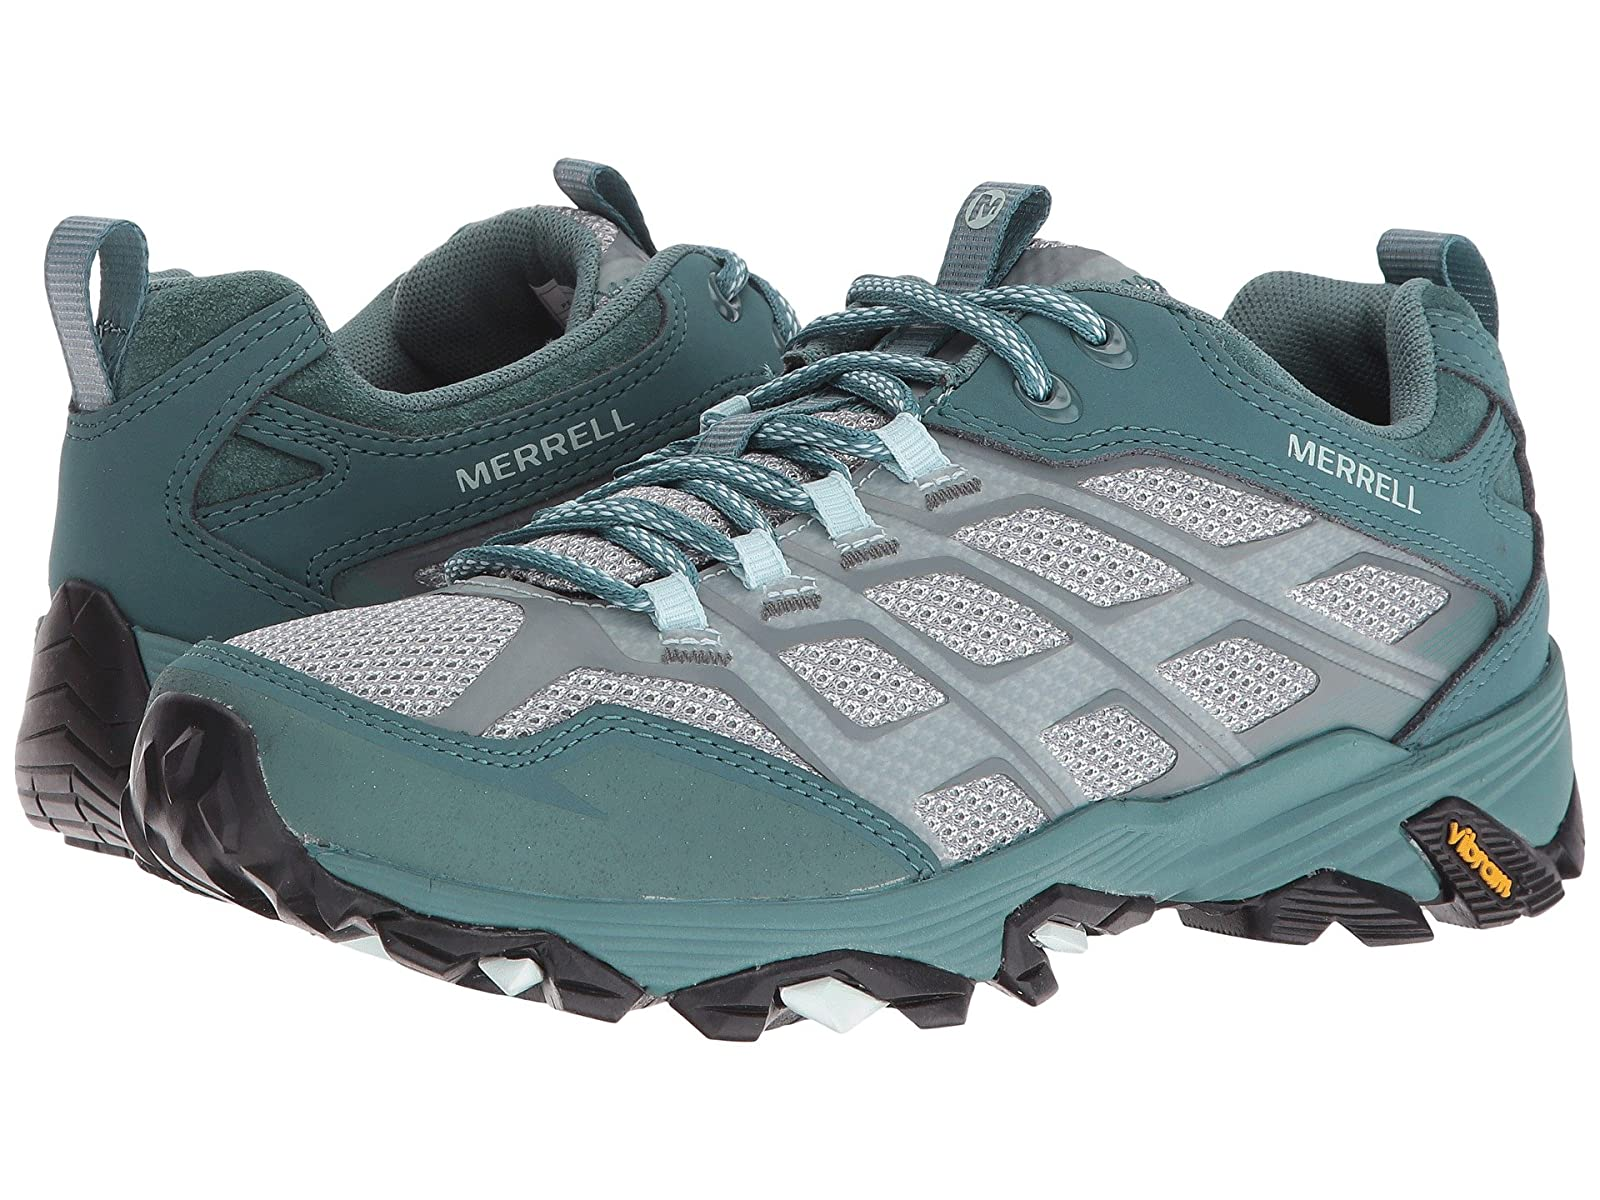 Merrell Moab FSTCheap and distinctive eye-catching shoes